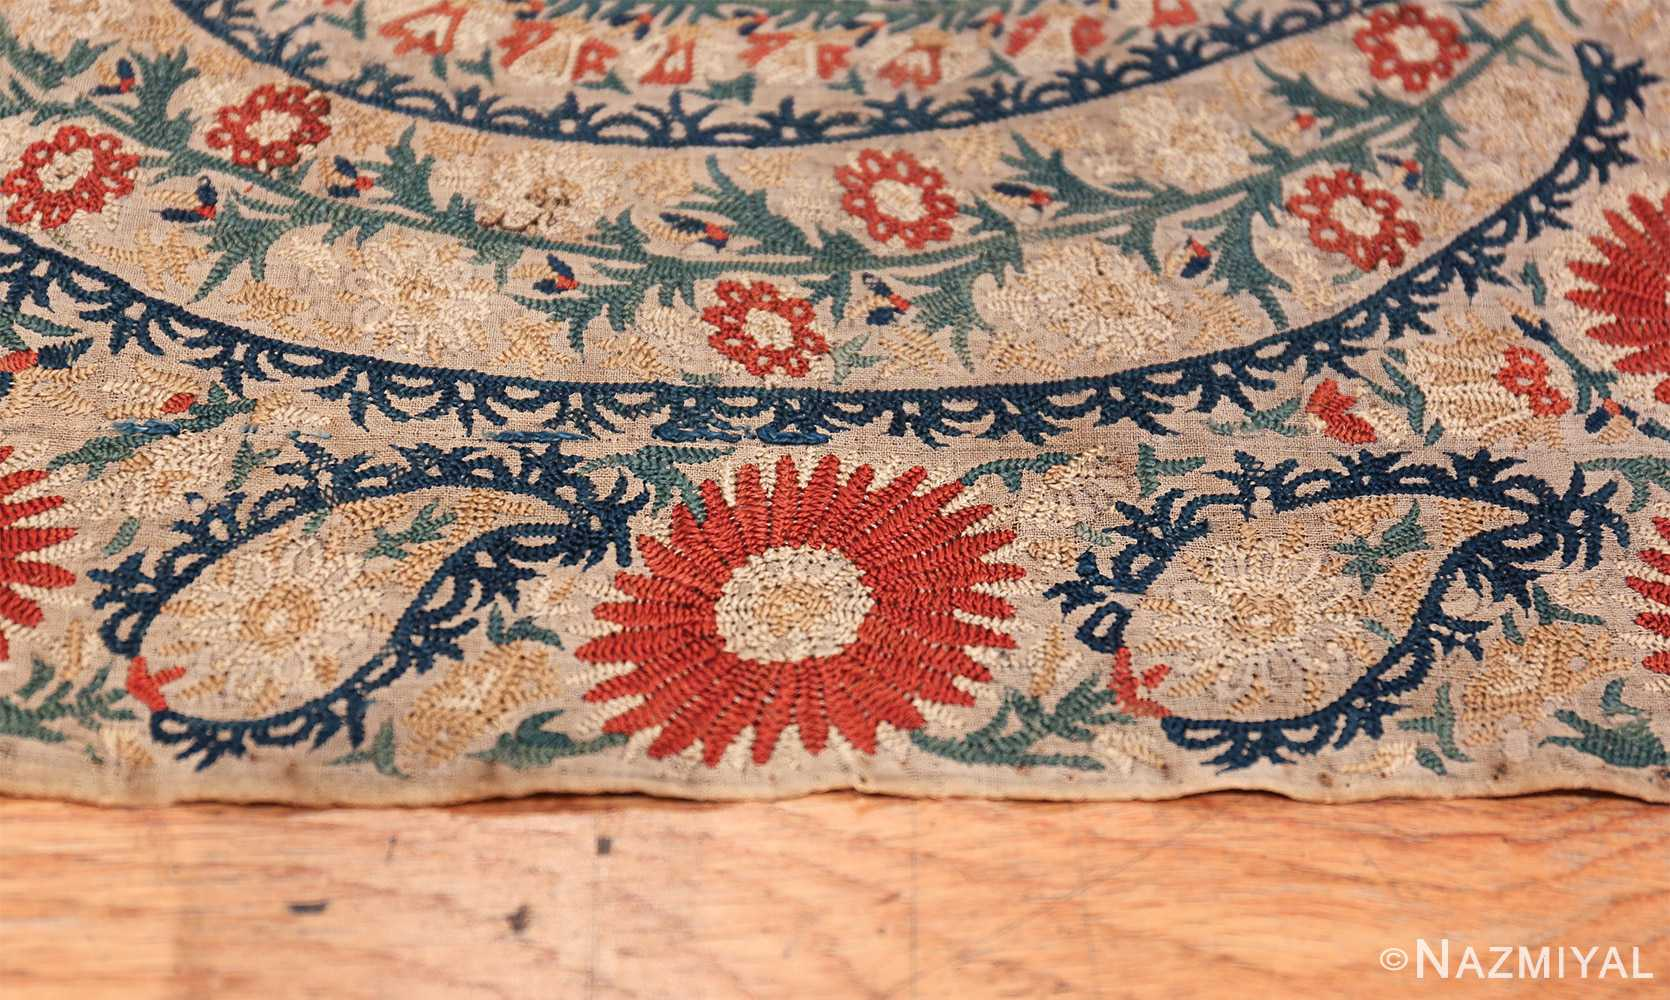 Antique 17th Century Ottoman Textile 41498 horizontal Nazmiyal